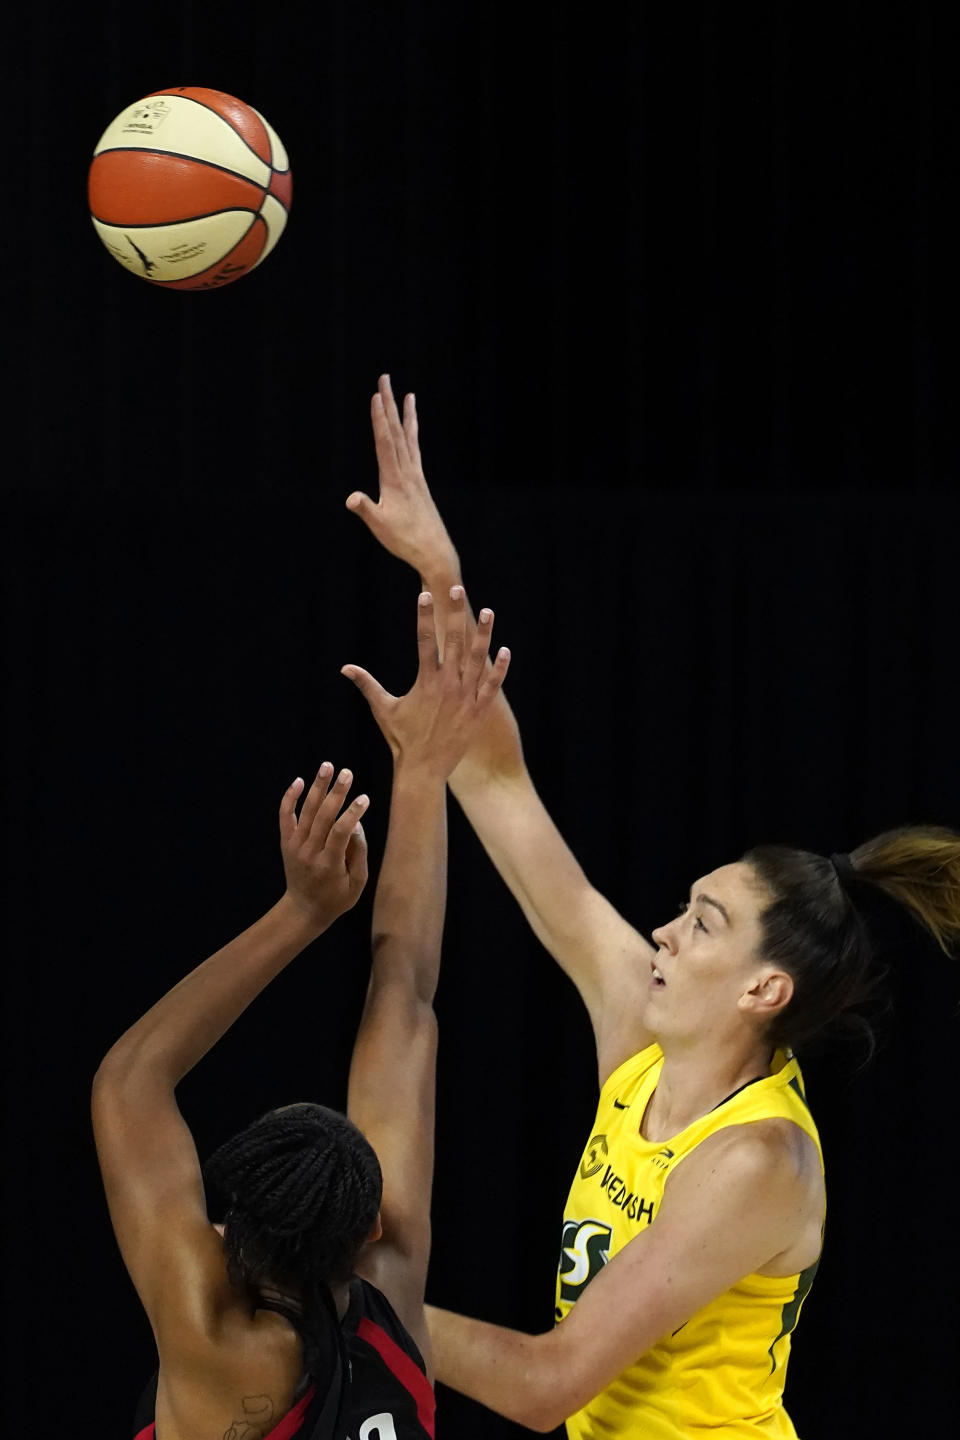 Seattle Storm forward Breanna Stewart (30) shoots over Las Vegas Aces guard Jackie Young during the first half of Game 1 of basketball's WNBA Finals Friday, Oct. 2, 2020, in Bradenton, Fla. (AP Photo/Chris O'Meara)